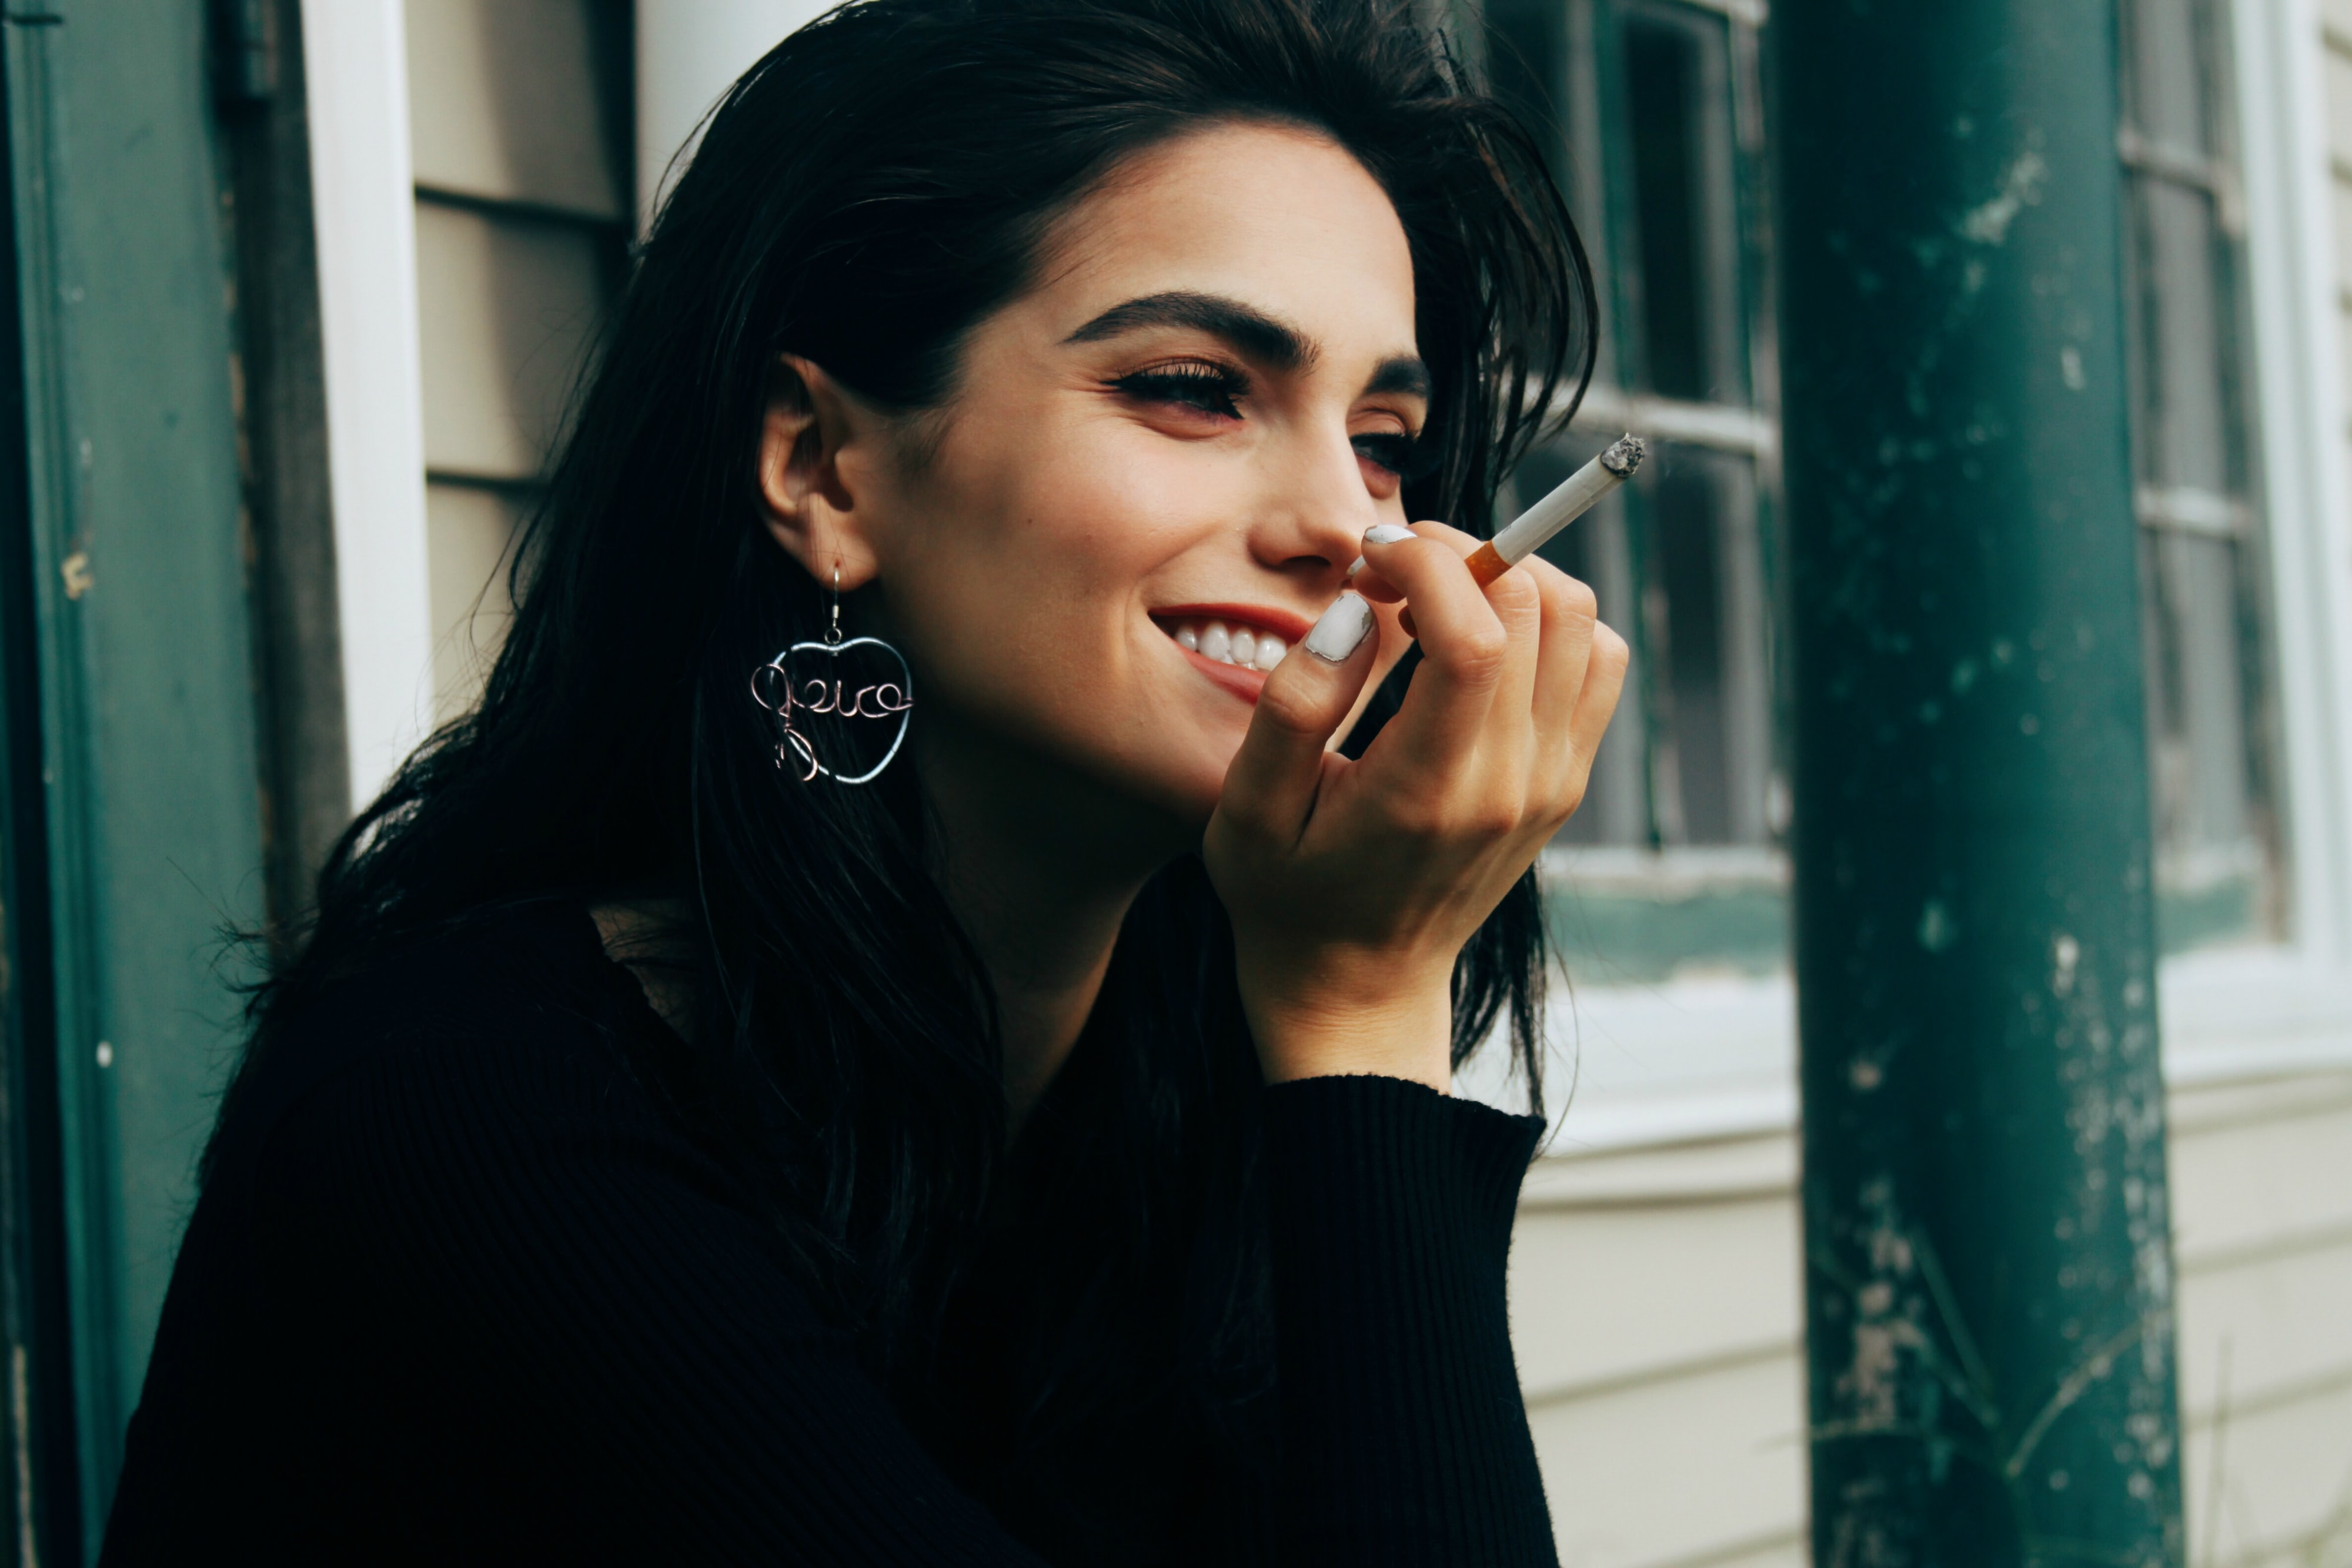 woman wearing black long-sleeved shirt holding lighted cigarette while smiling